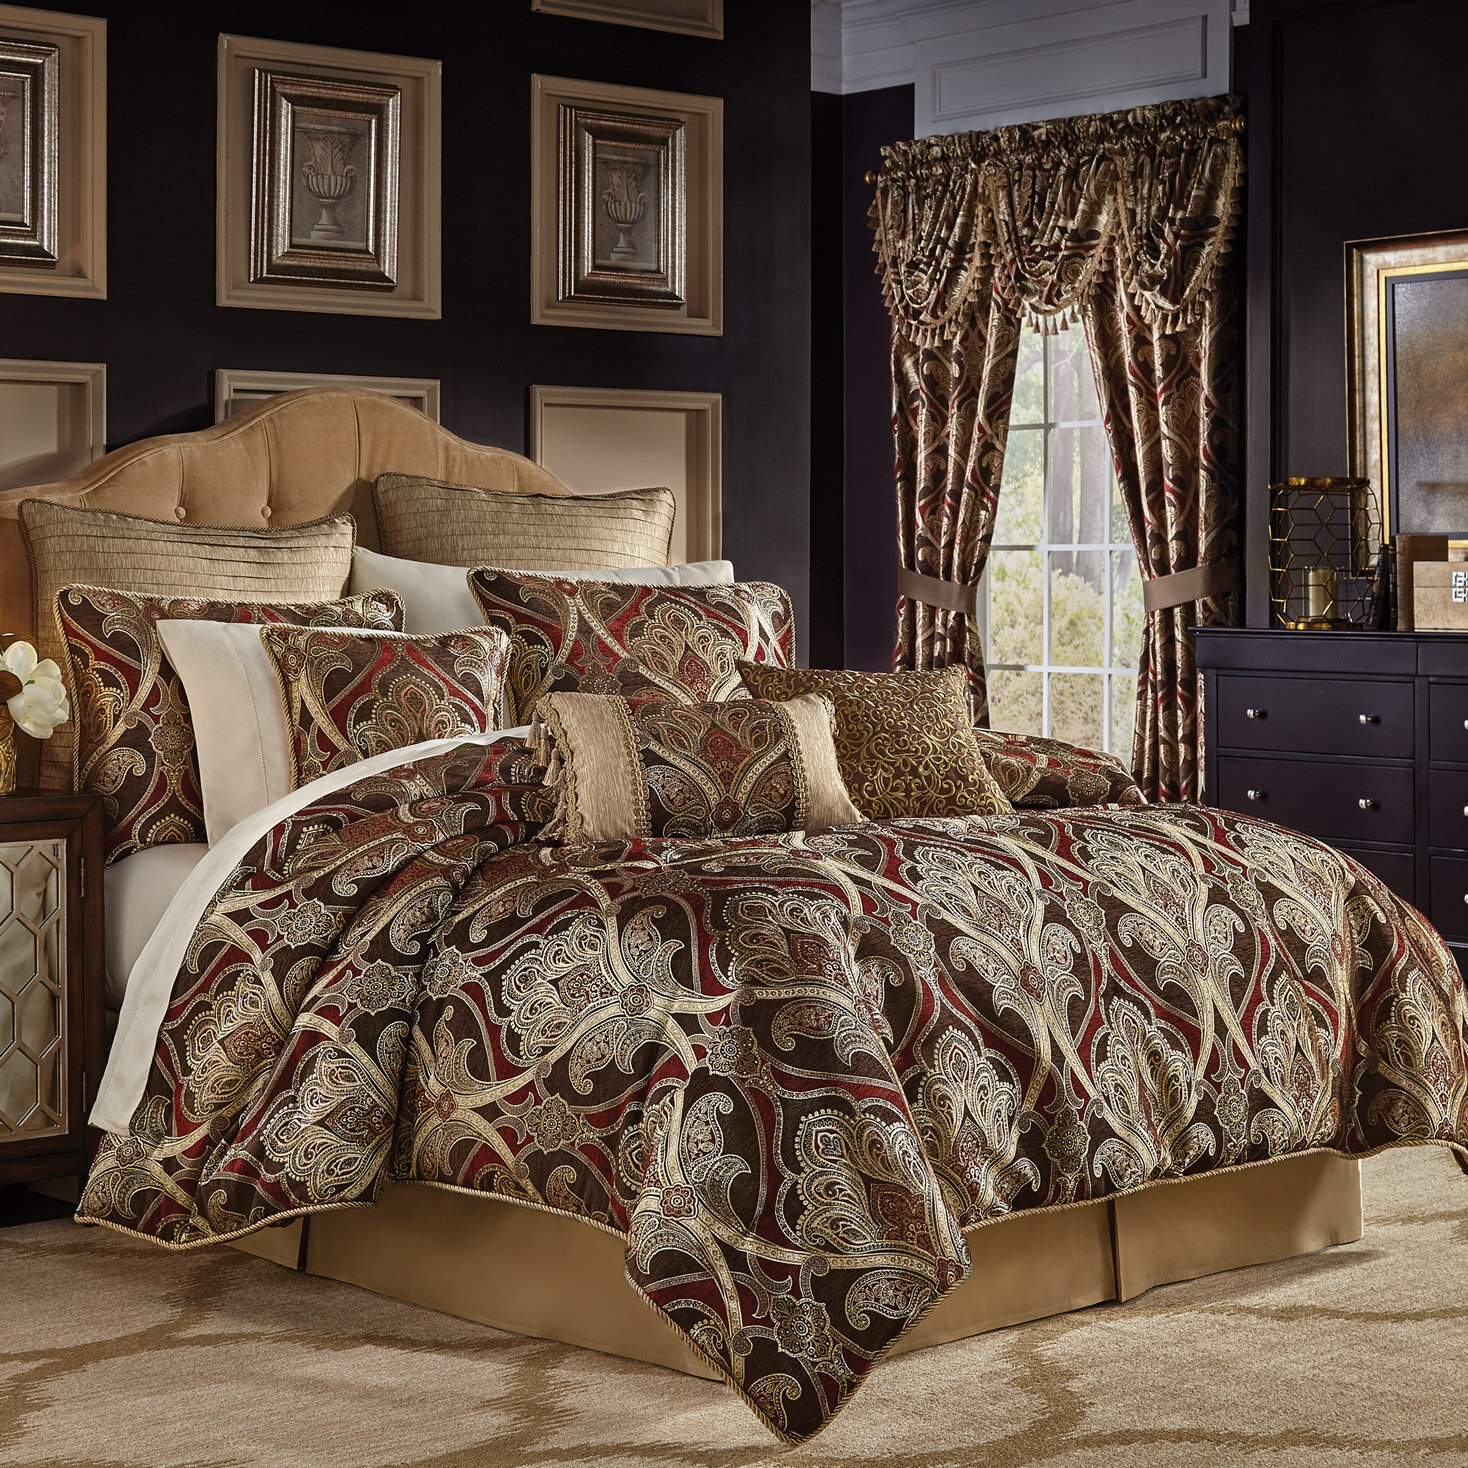 Bradney 4 Piece Comforter Set By Croscill Home Fashions